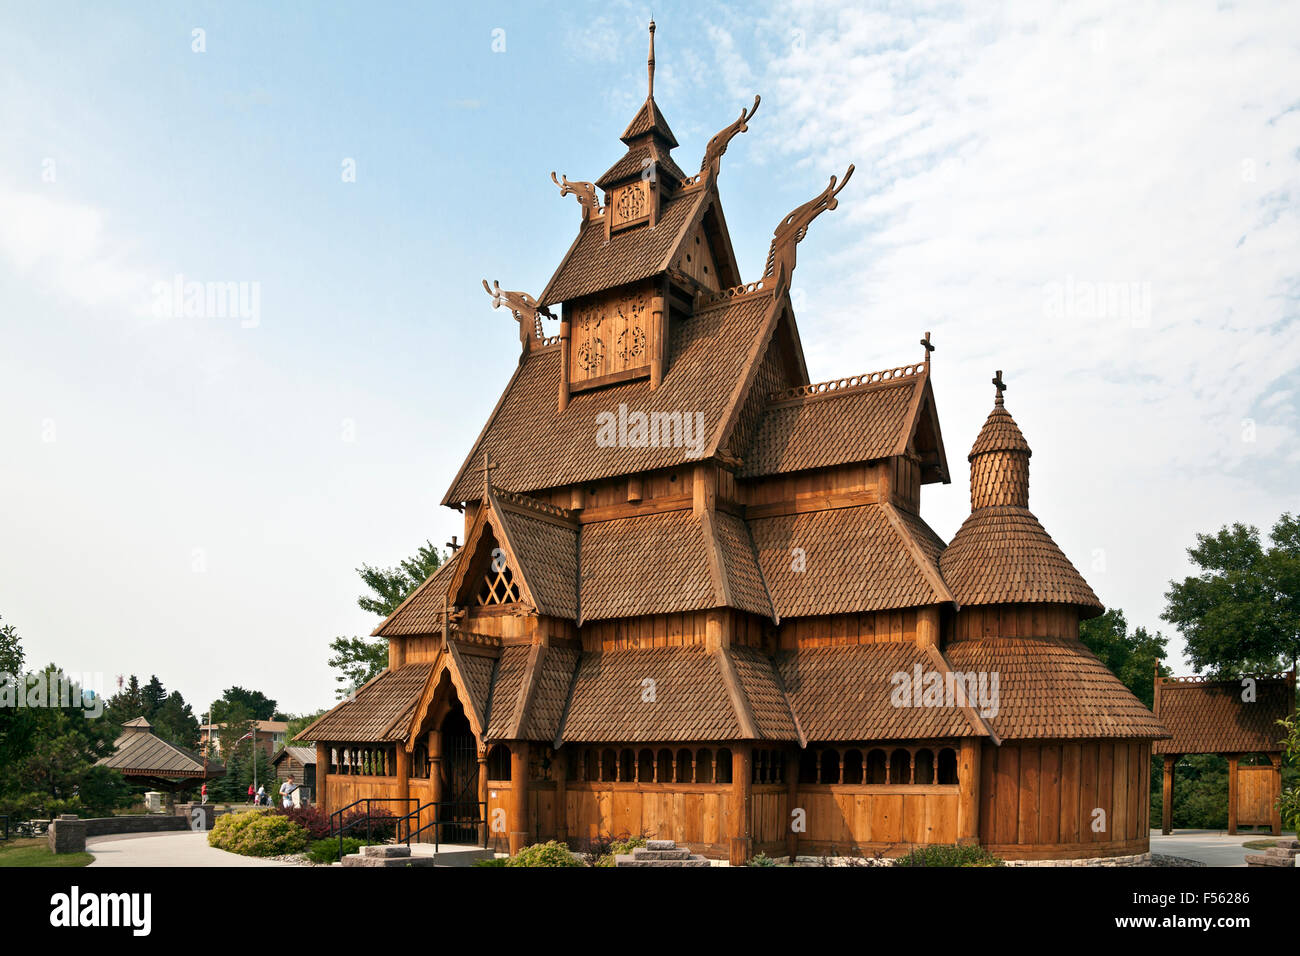 Full-sized replica of the Gol (Hallingdal) Stave Church, built in the mid 1200s in Gol, Norway. - Stock Image